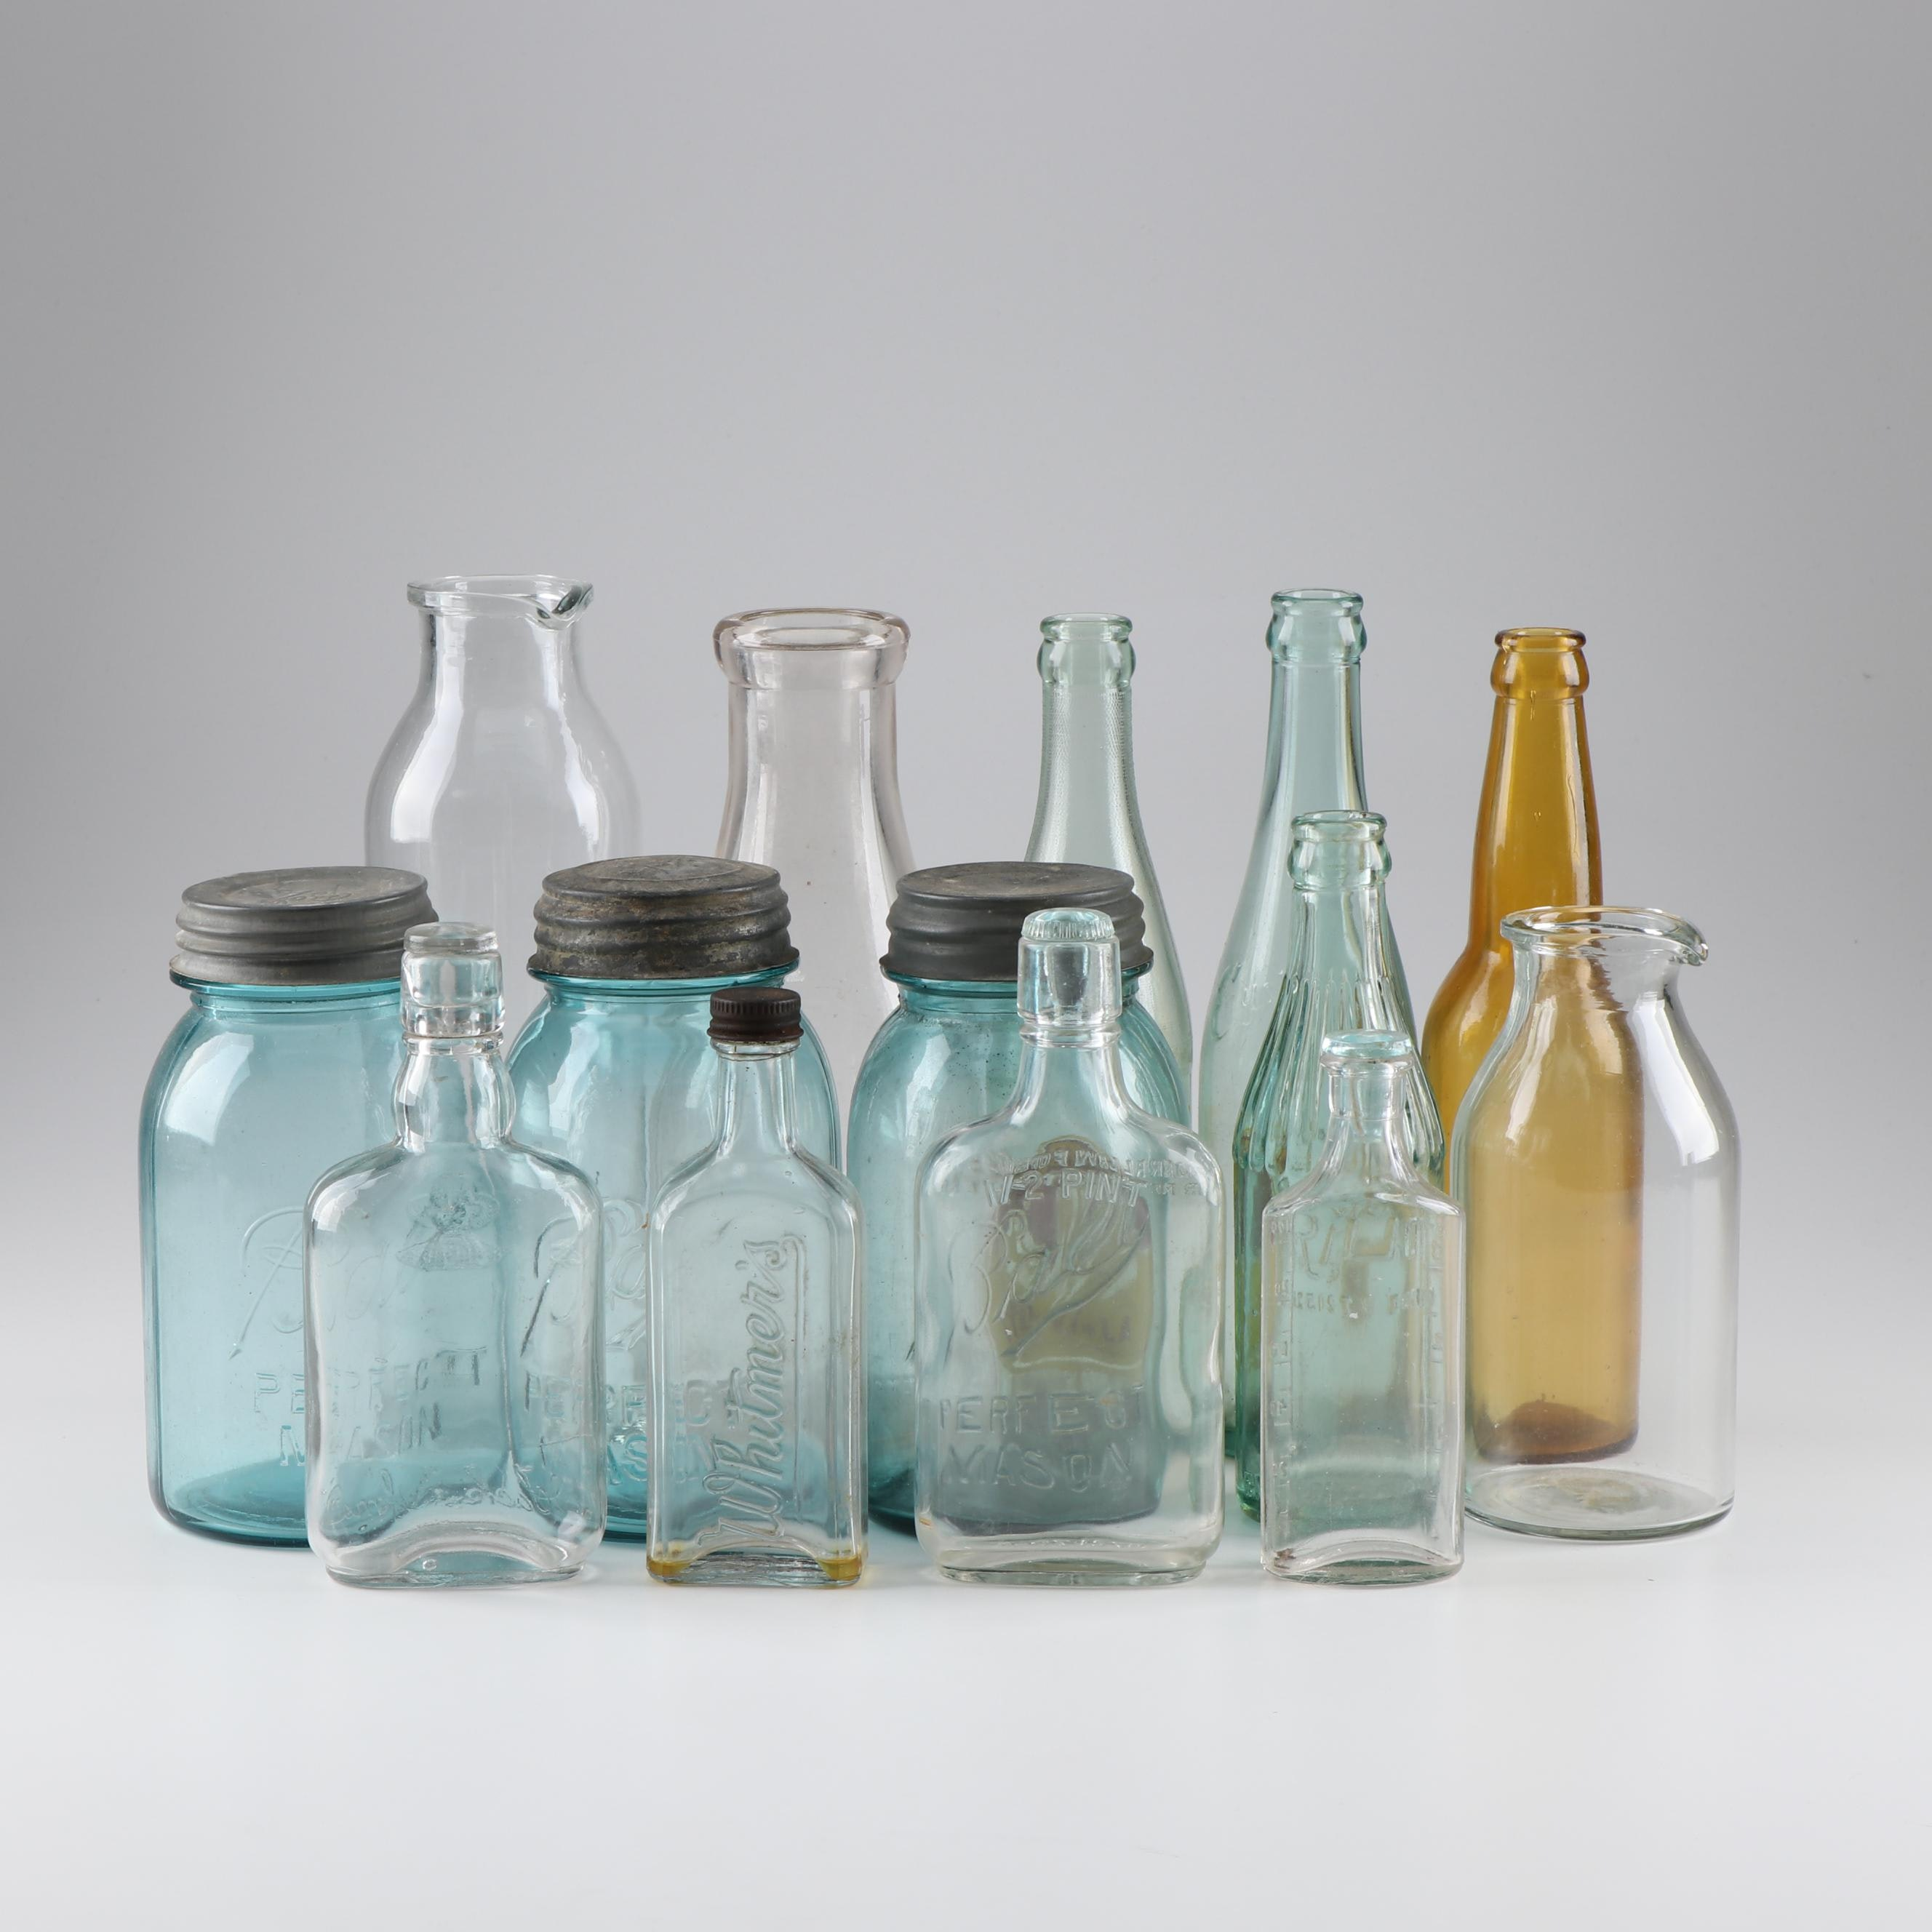 Vintage Ball Blue Glass Mason Jars and Bottles